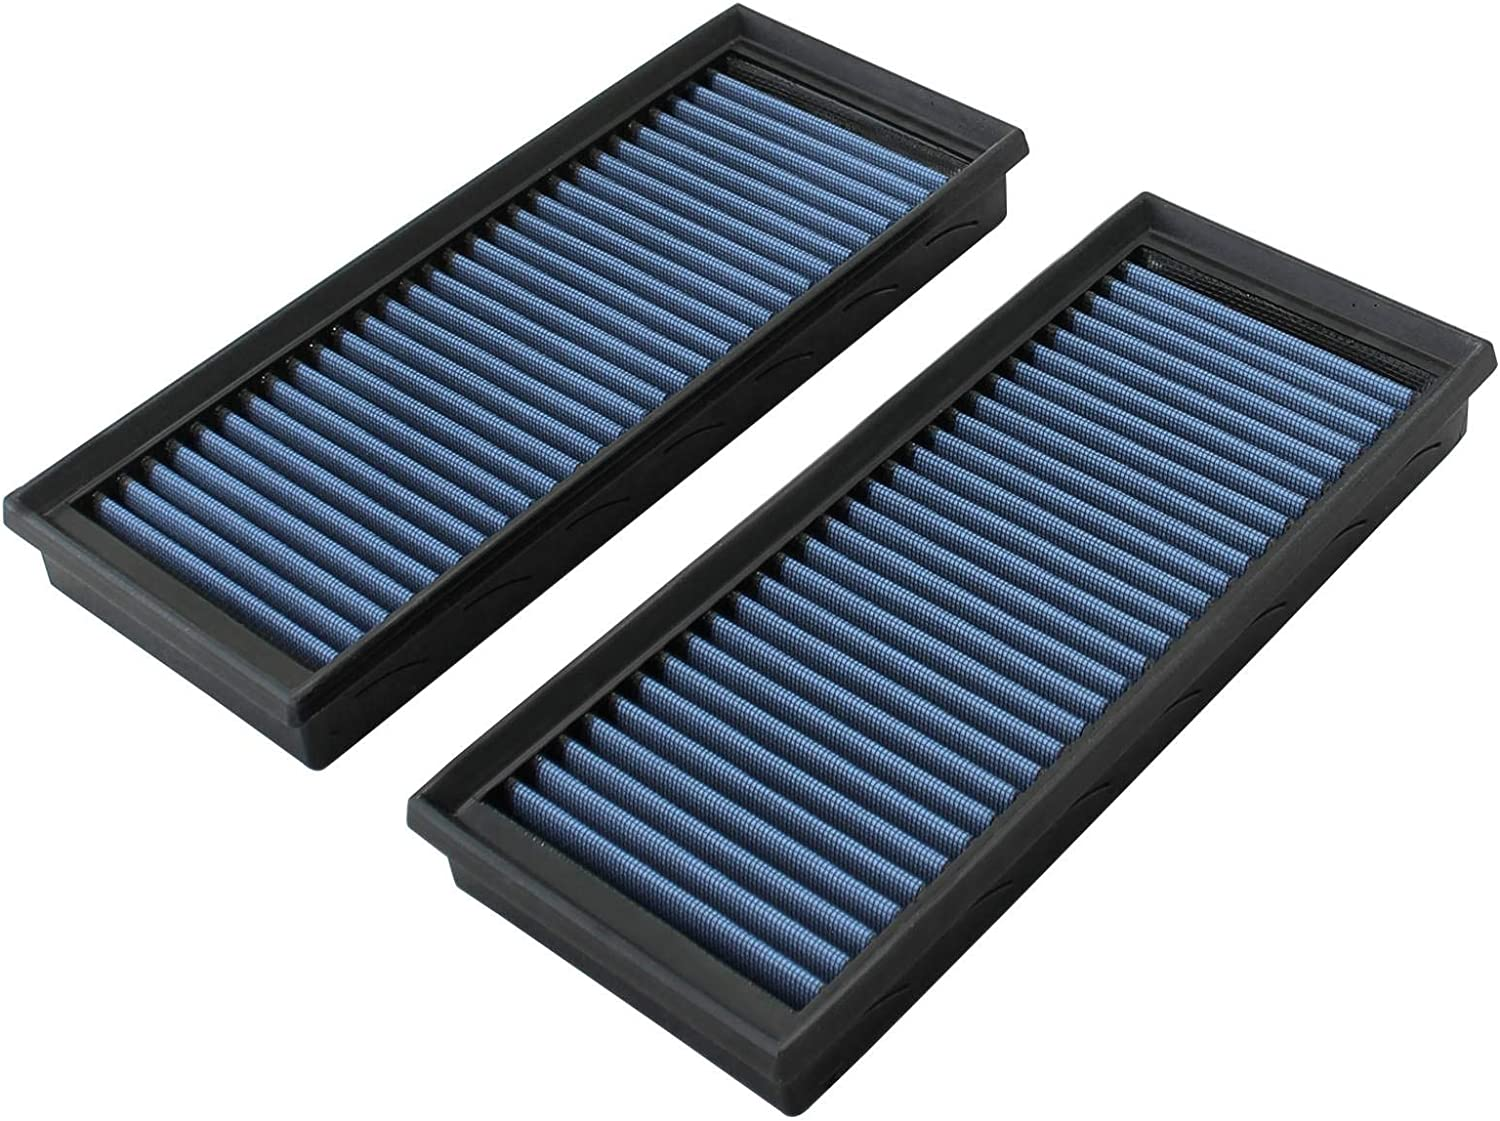 aFe Regular discount 30-10223 Magnum FLOW Pro 5R OE Portland Mall for Me Filter Air Replacement